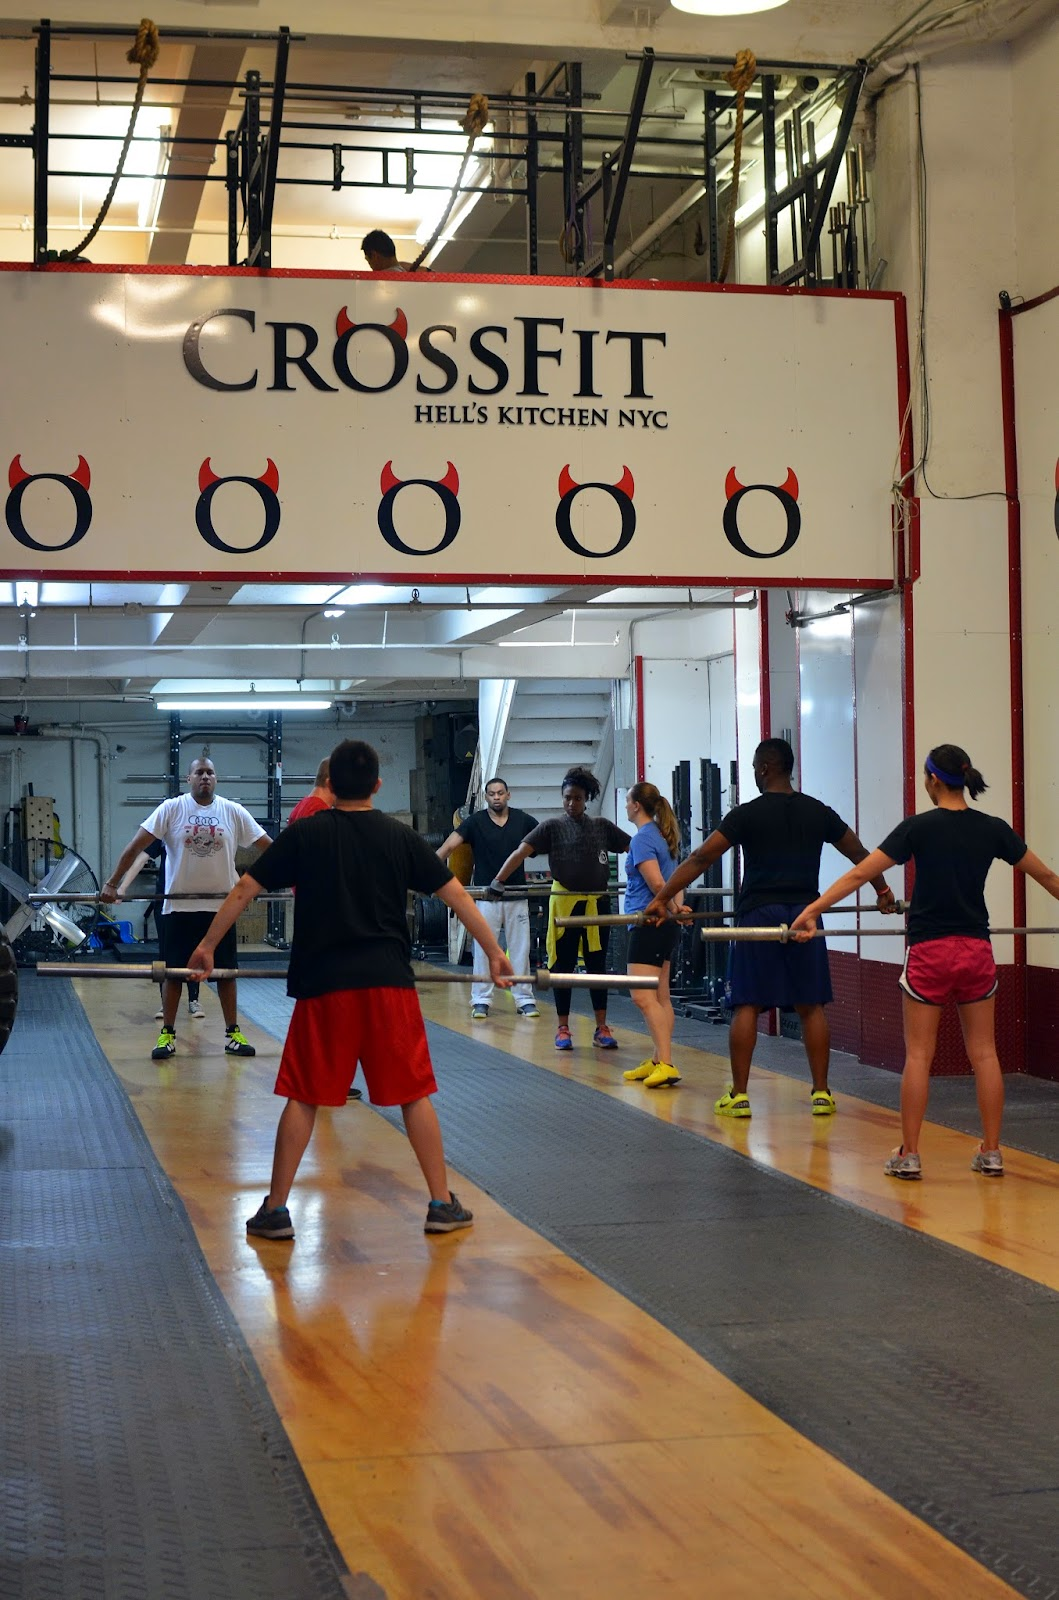 jes' crossfit blog: crossfit hell's kitchen